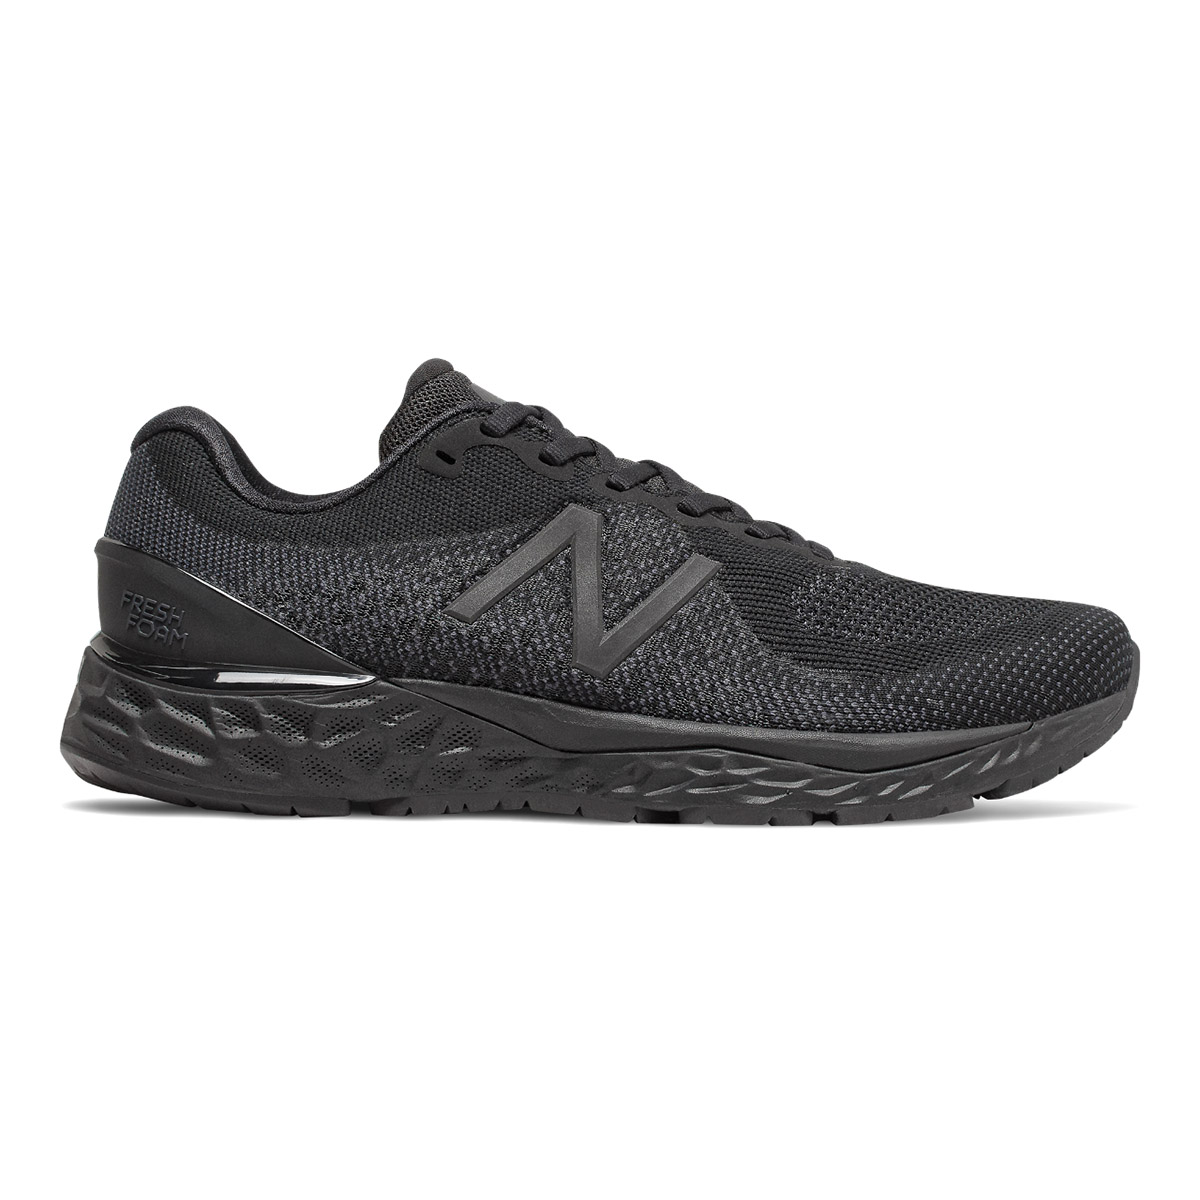 New Balance 880 V10 herre (bred model)